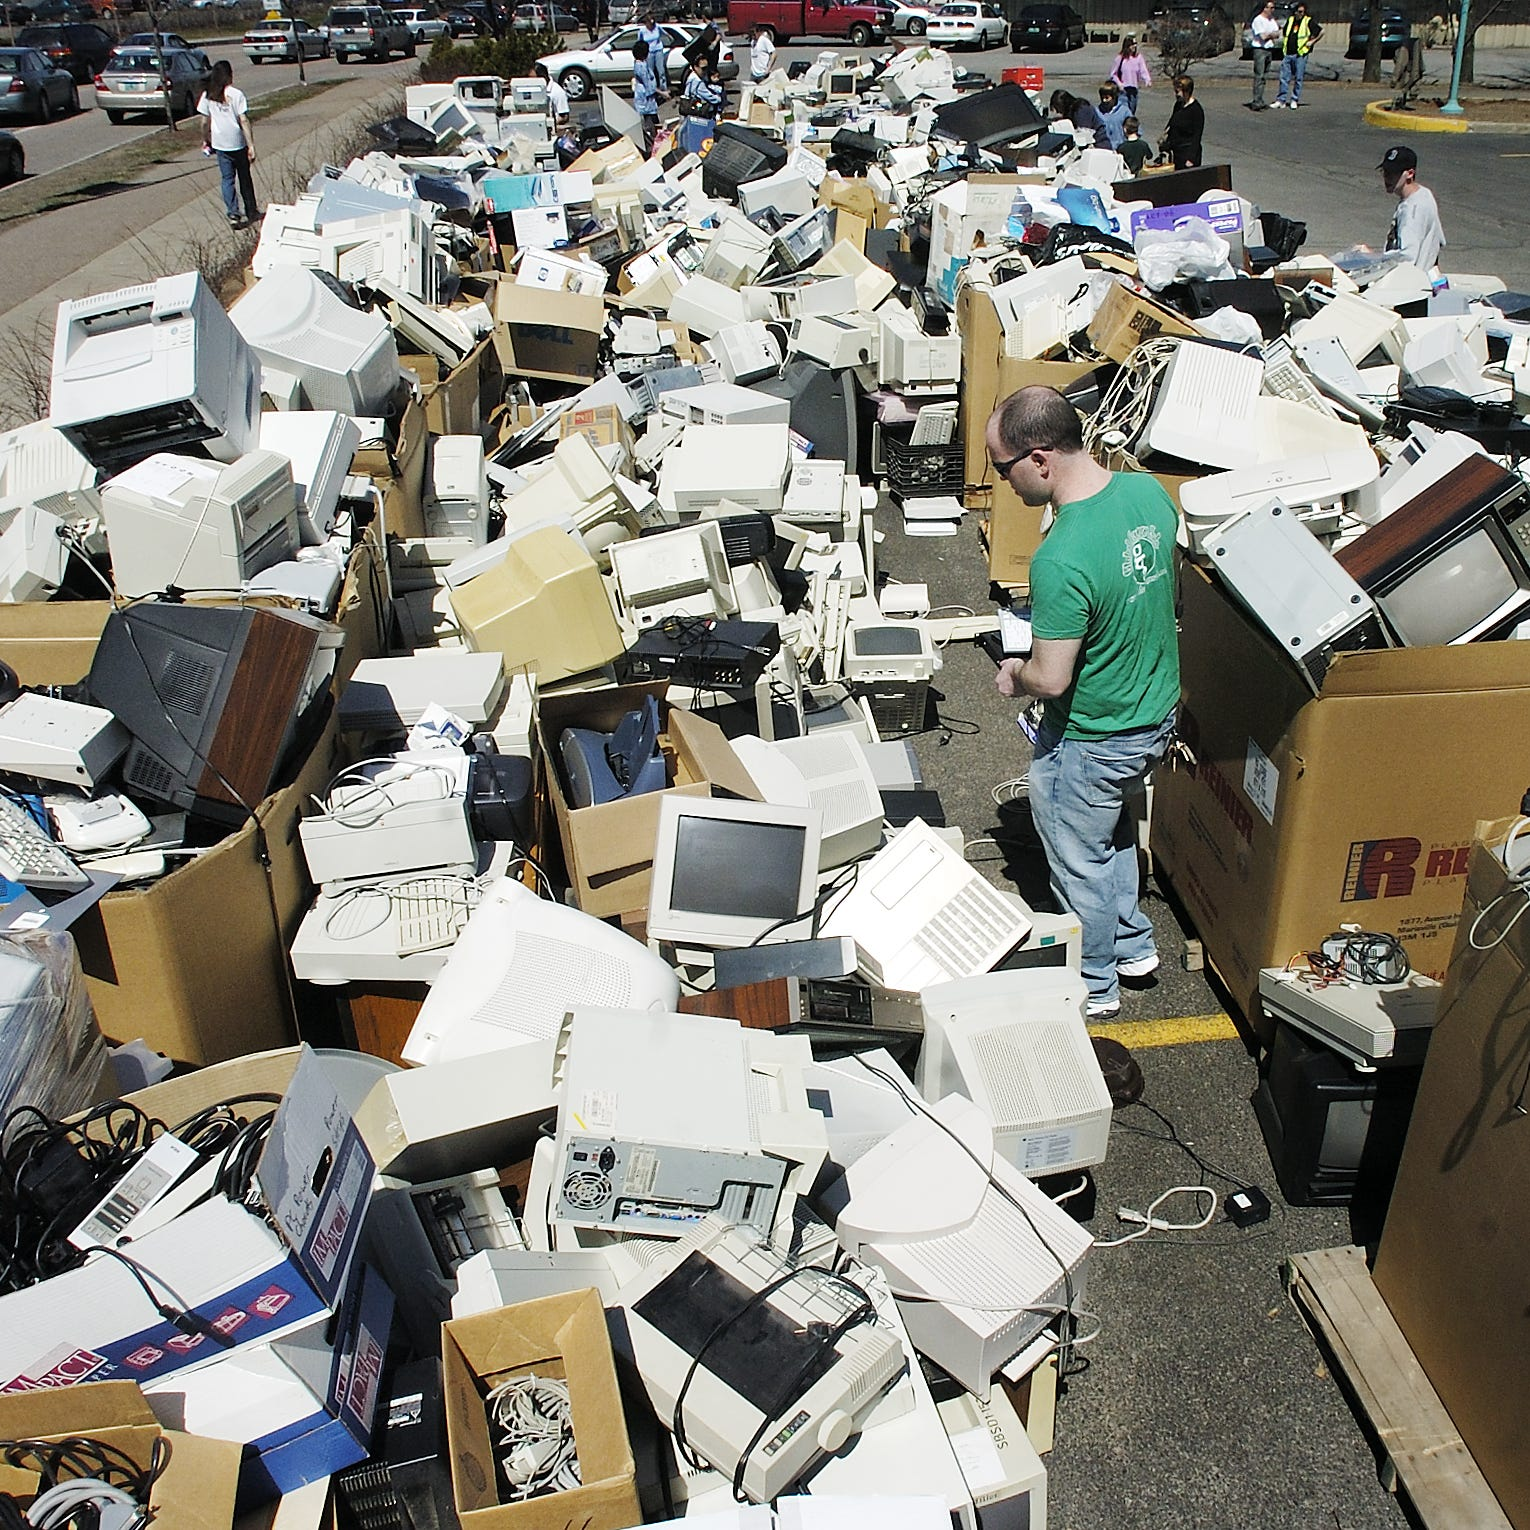 2011: VT law bans more electronics from landfills